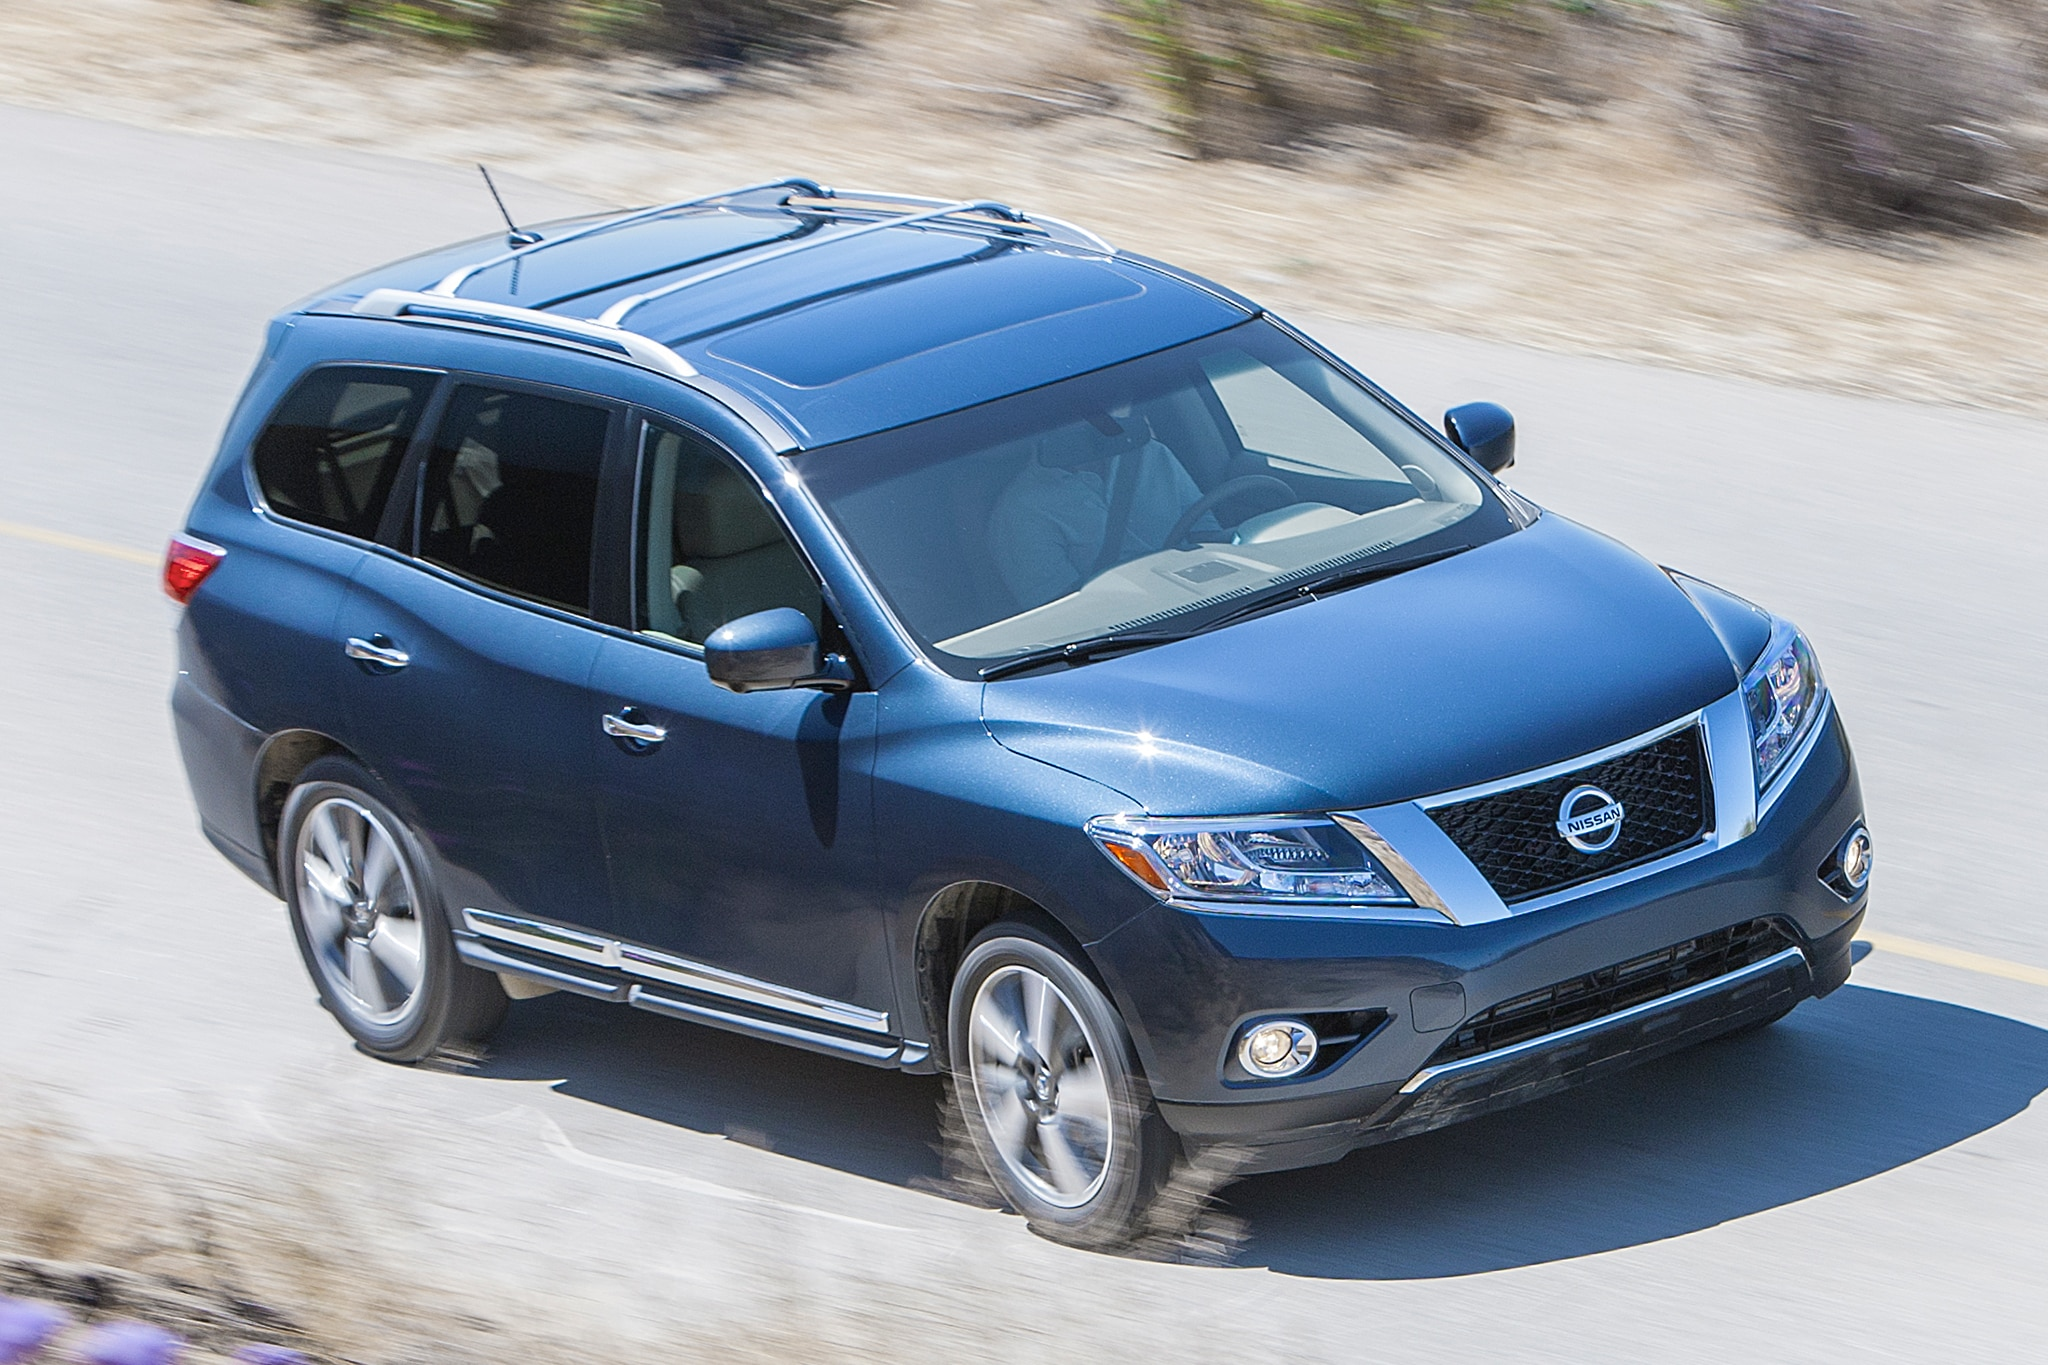 2013 Nissan Pathfinder Platinum Three Quarters View